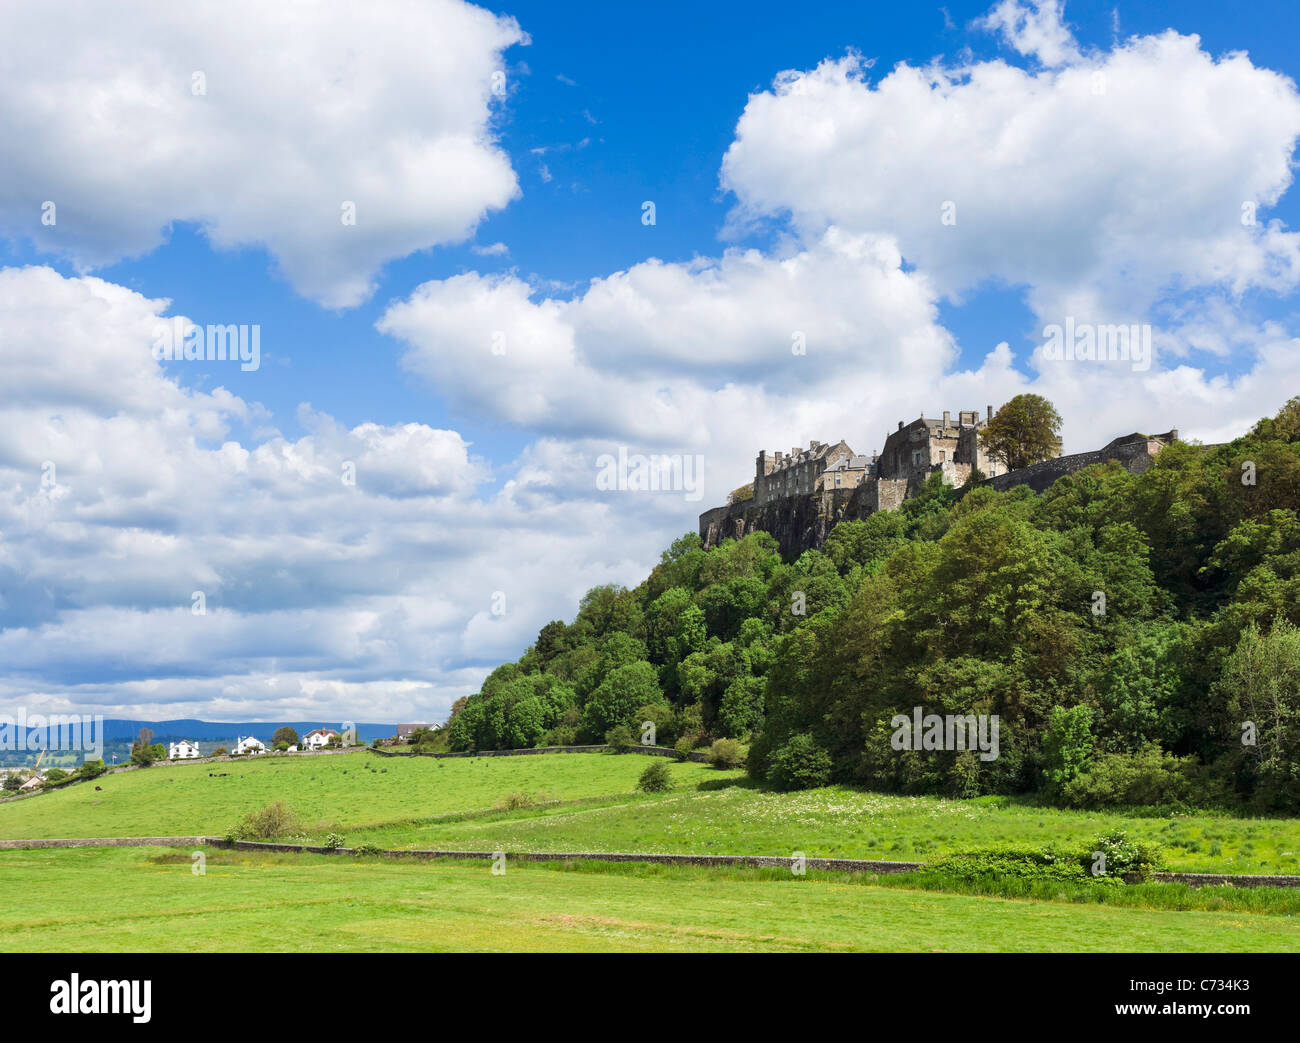 Stirling Castle viewed from King's Knot Gardens, Stirling, Scotland, UK - Stock Image